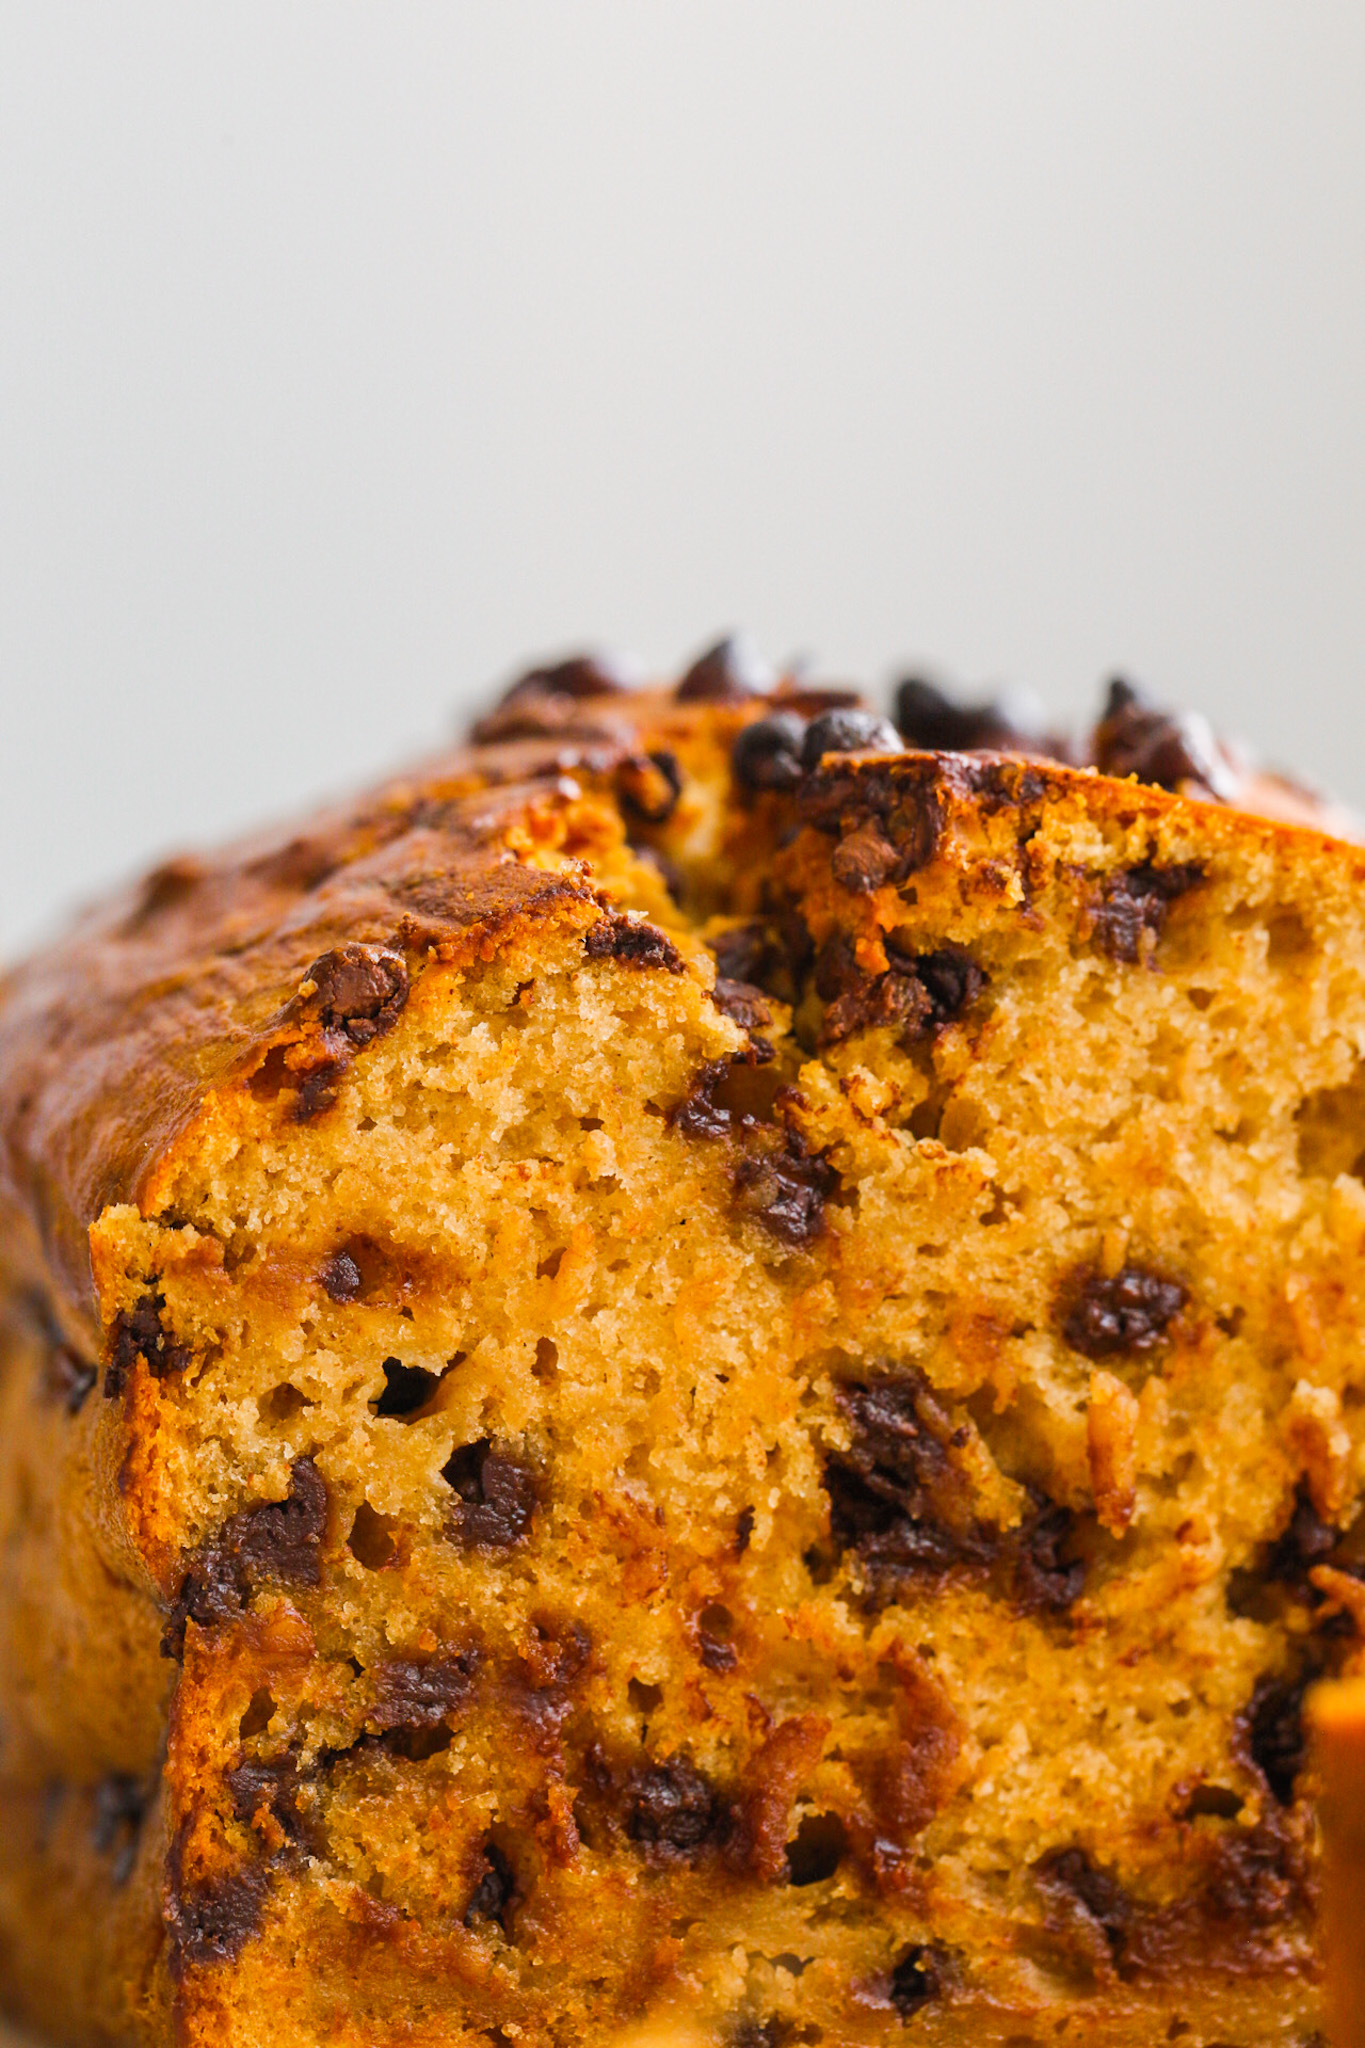 Chickpea Banana Bread with chocolate chips